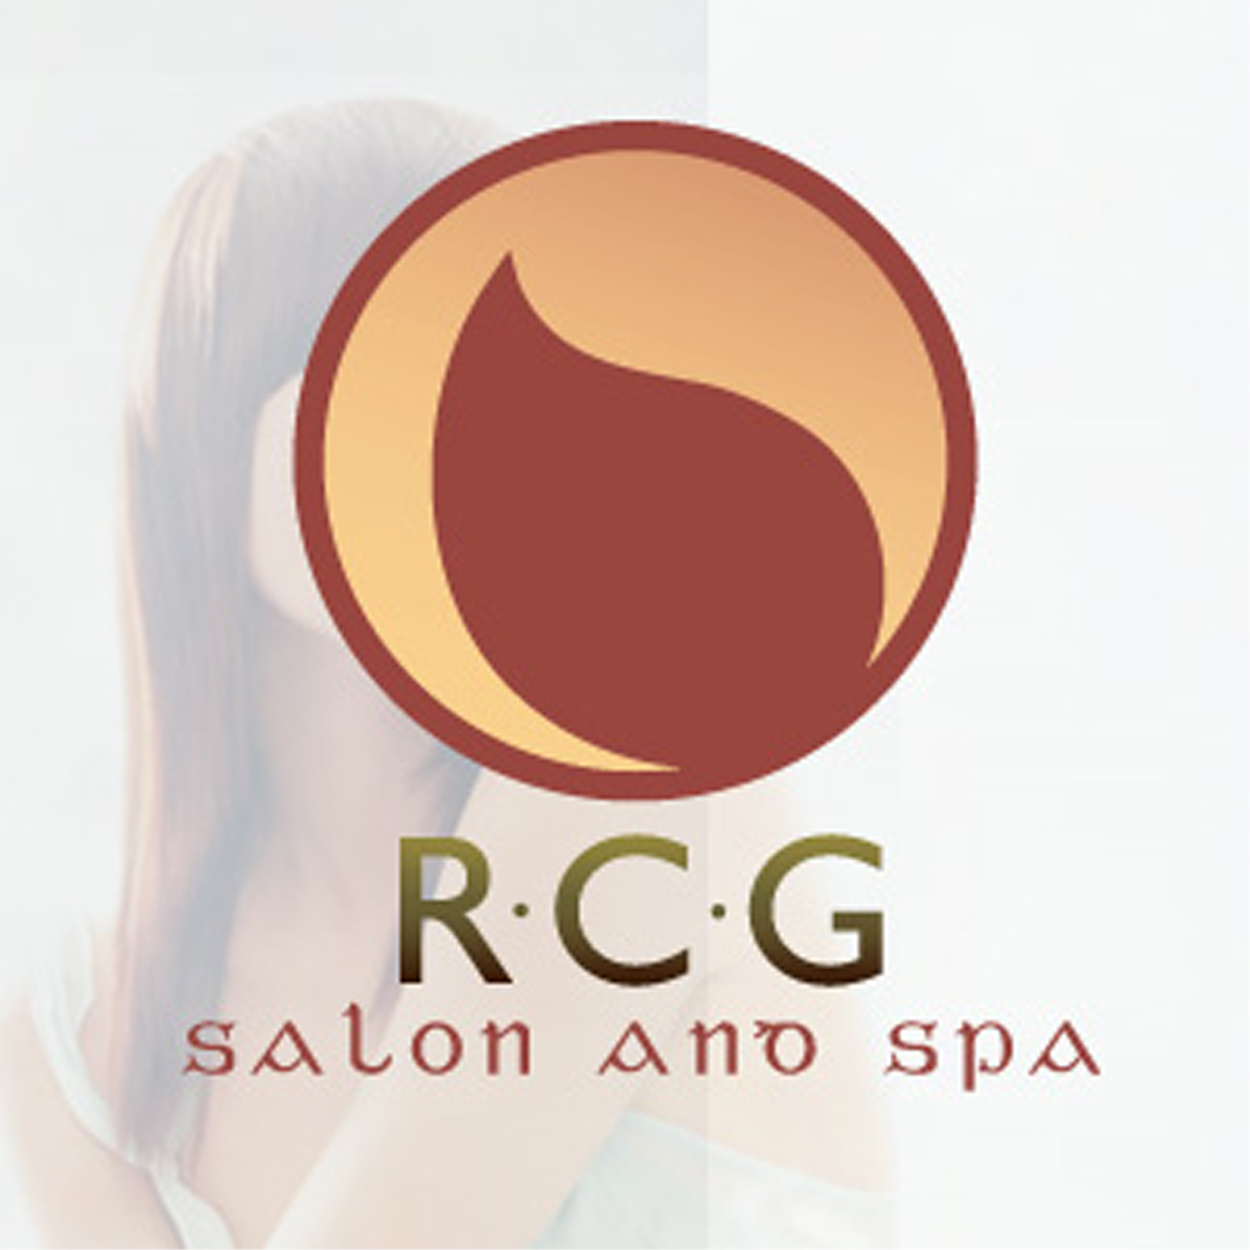 Rose Colored Glasses Salon and Spa.jpg